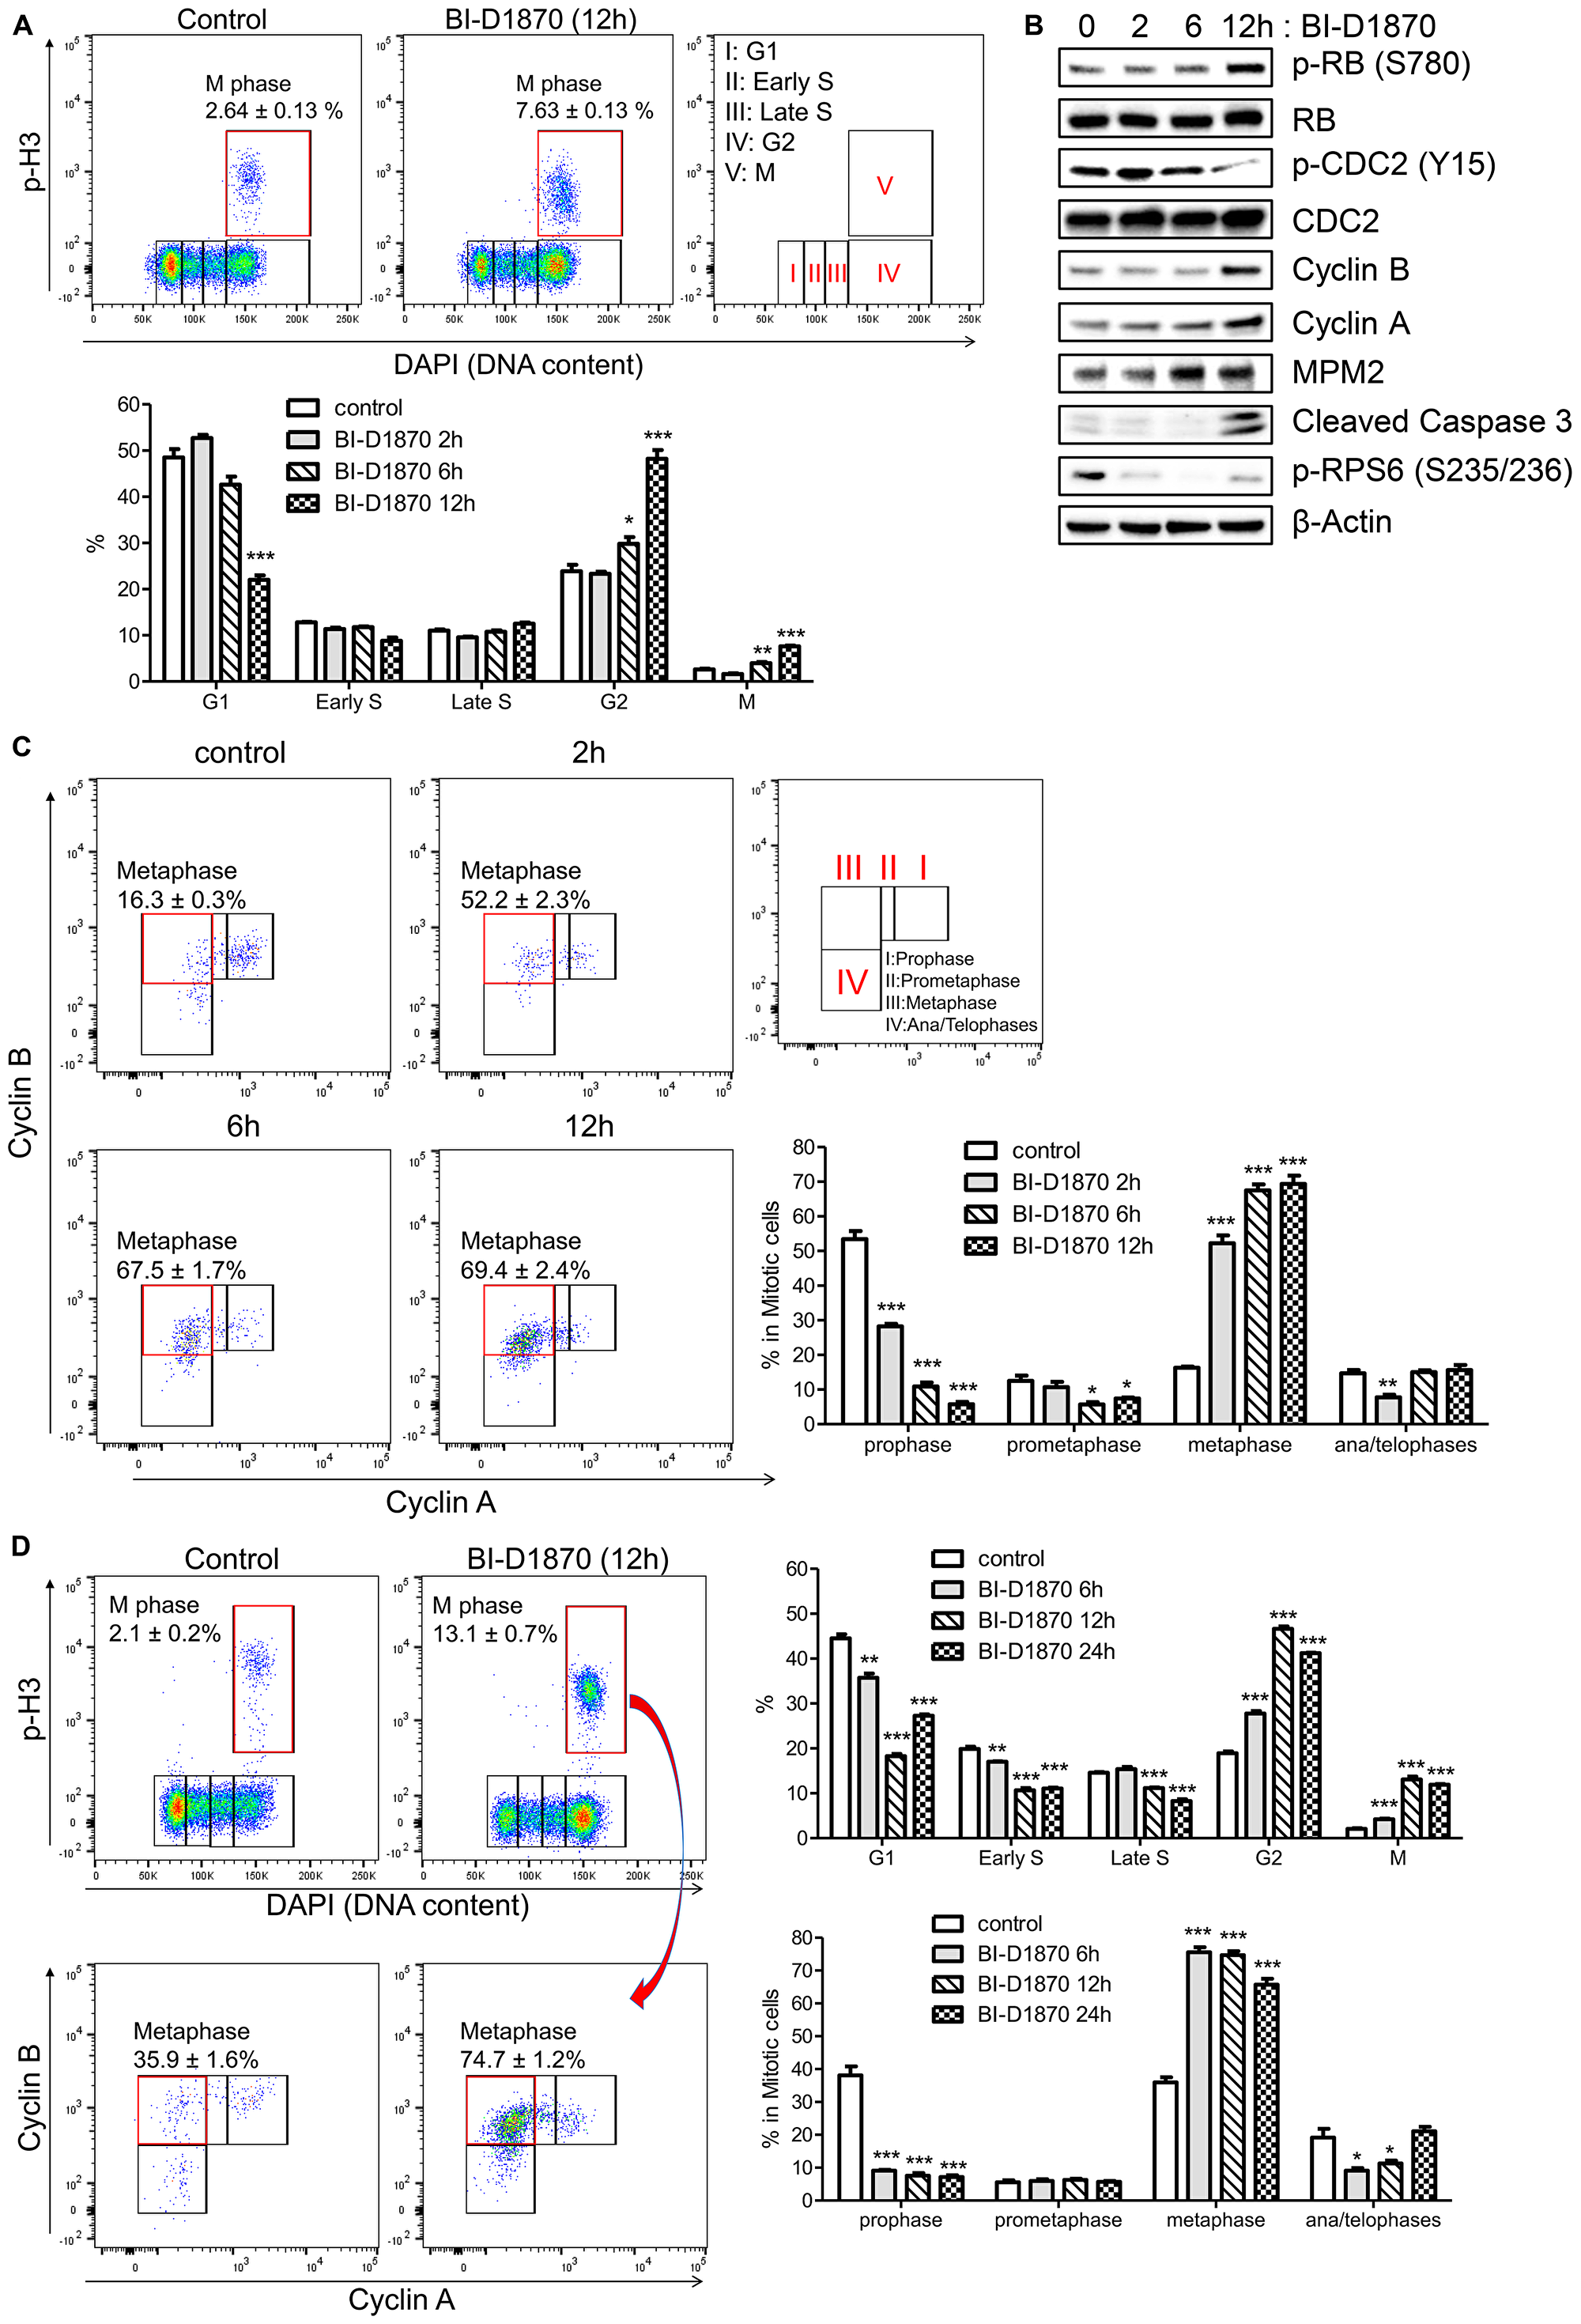 BI-D1870 treatment induces mitotic arrest and apoptosis in HL60 cells.